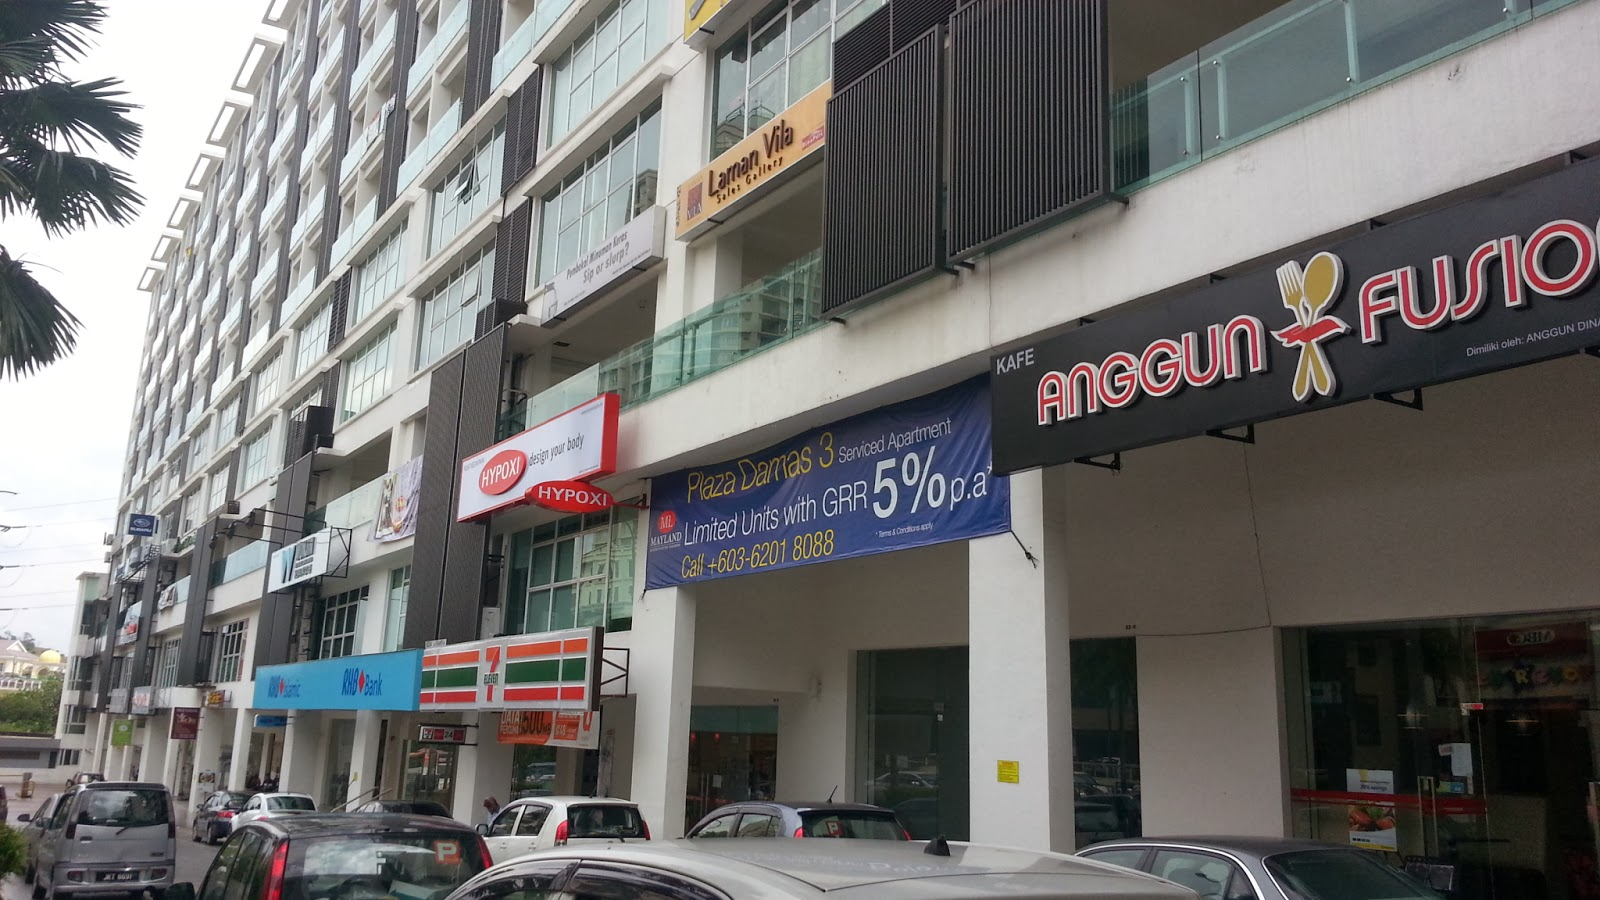 walking distance to plaza damas shopping centre amp taylor colleague